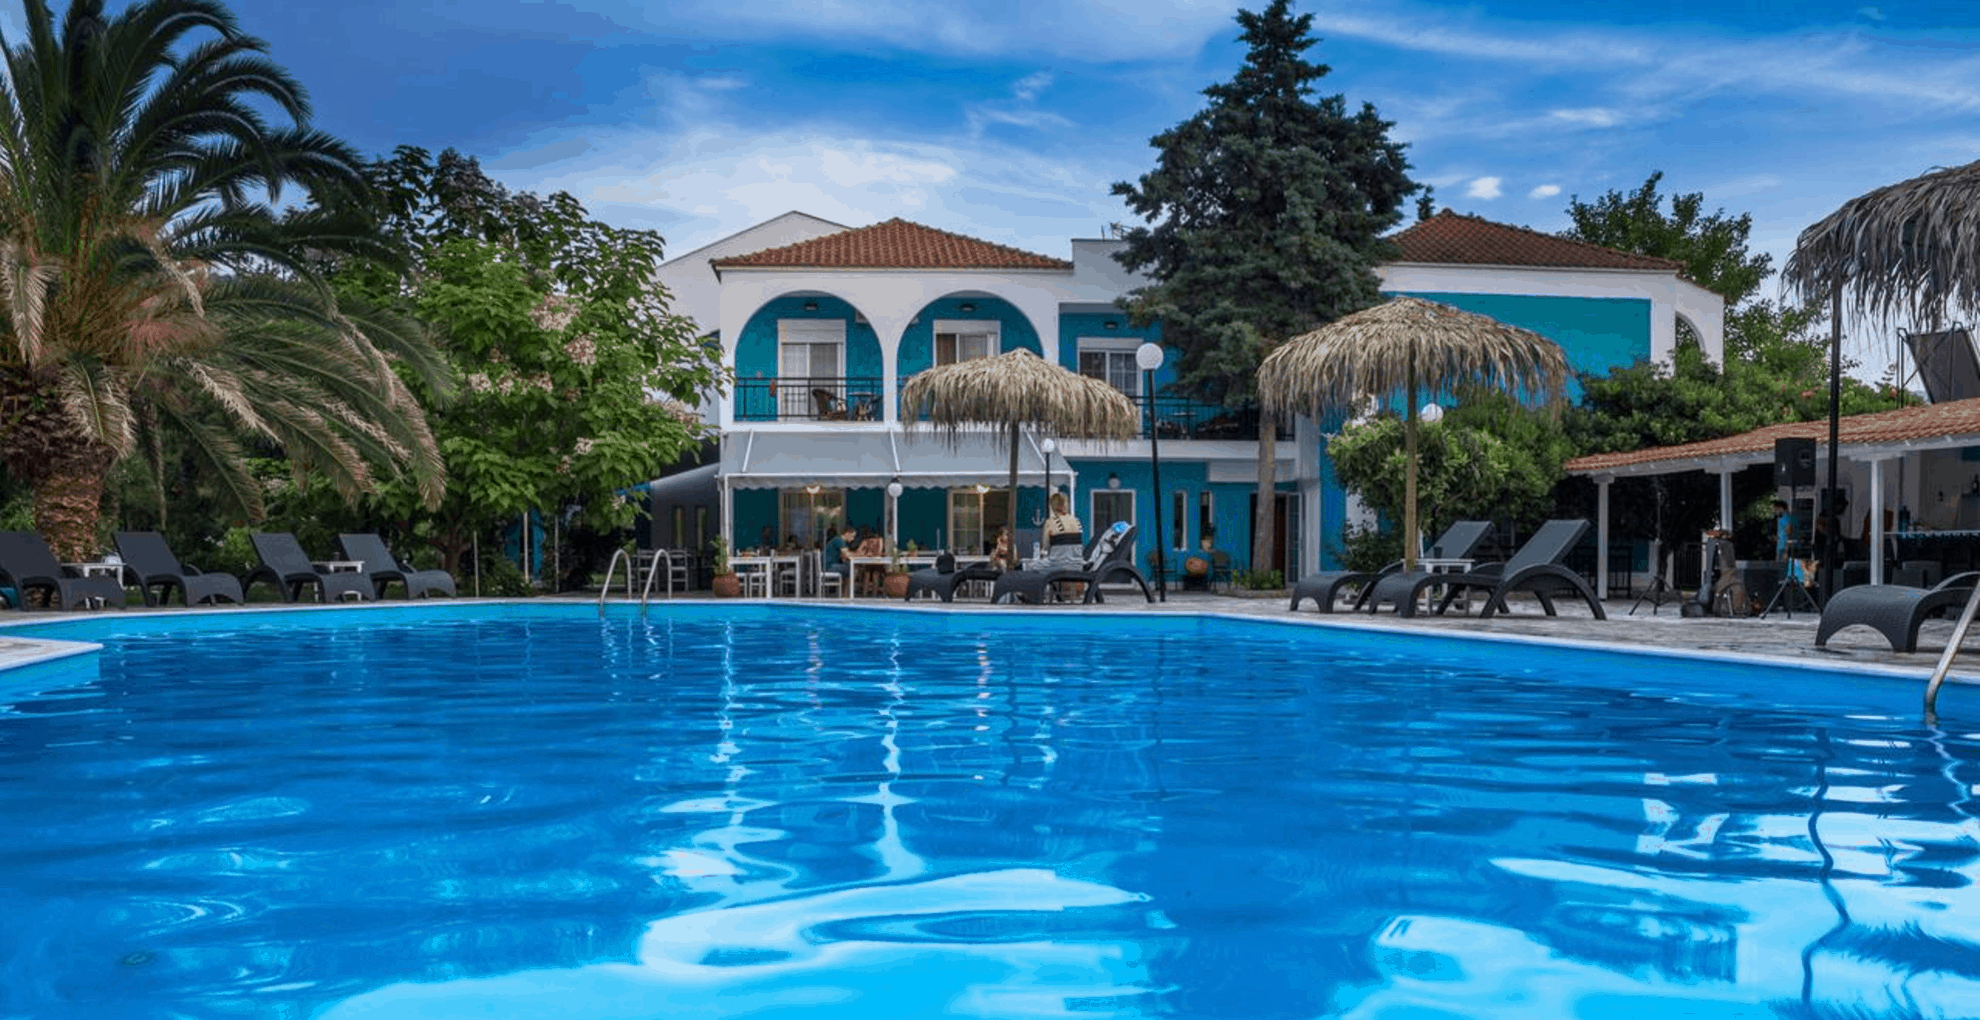 Chatziandreou Hotel Thassos ? -26% ? 2 Ημέρες (1 Διανυκτέρευση) ? 2 άτομα ? Πρωινό ? 17/08/2020 έως 13/09/2020 ? Early check in και Late check out κατόπιν διαθεσιμότητας!